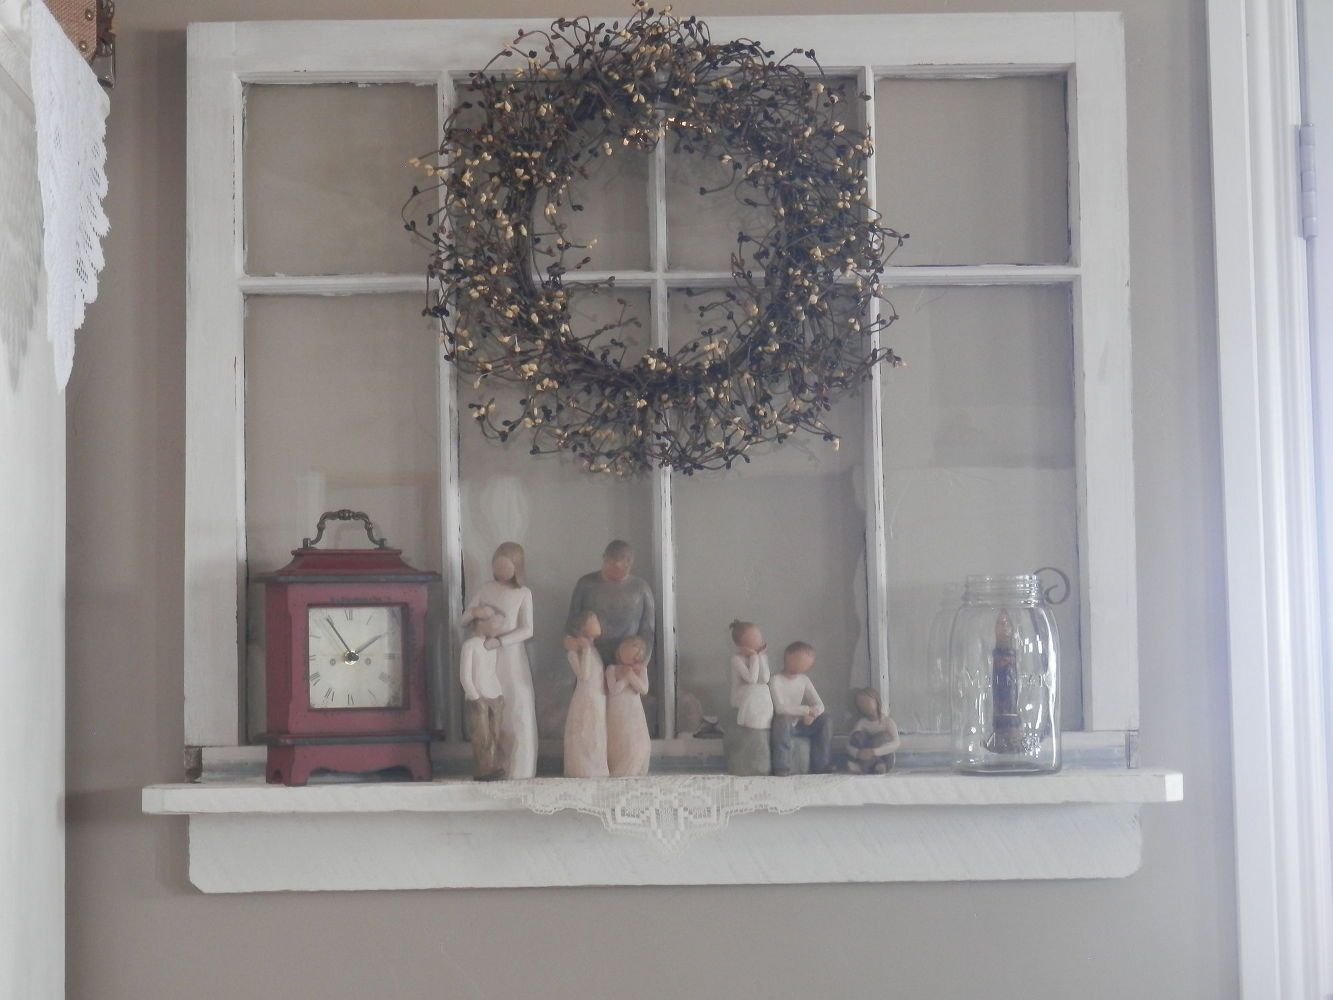 Repurposed Old Window to Shelf Decoration | DIY ideals ...